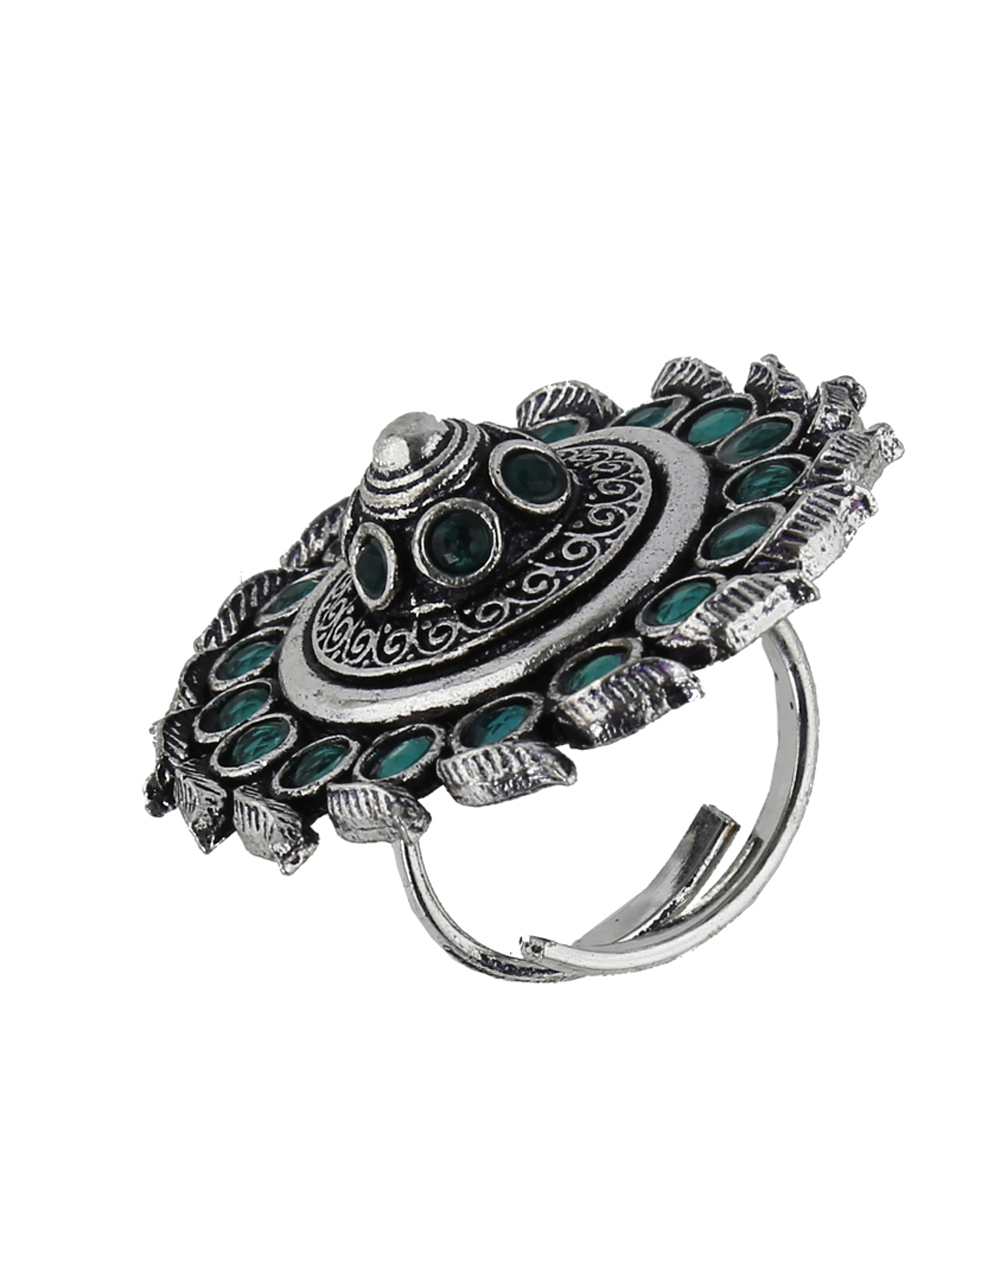 Very Classy Silver Finish Leaf Designed Green Colour Oxidized Finger Ring Design.